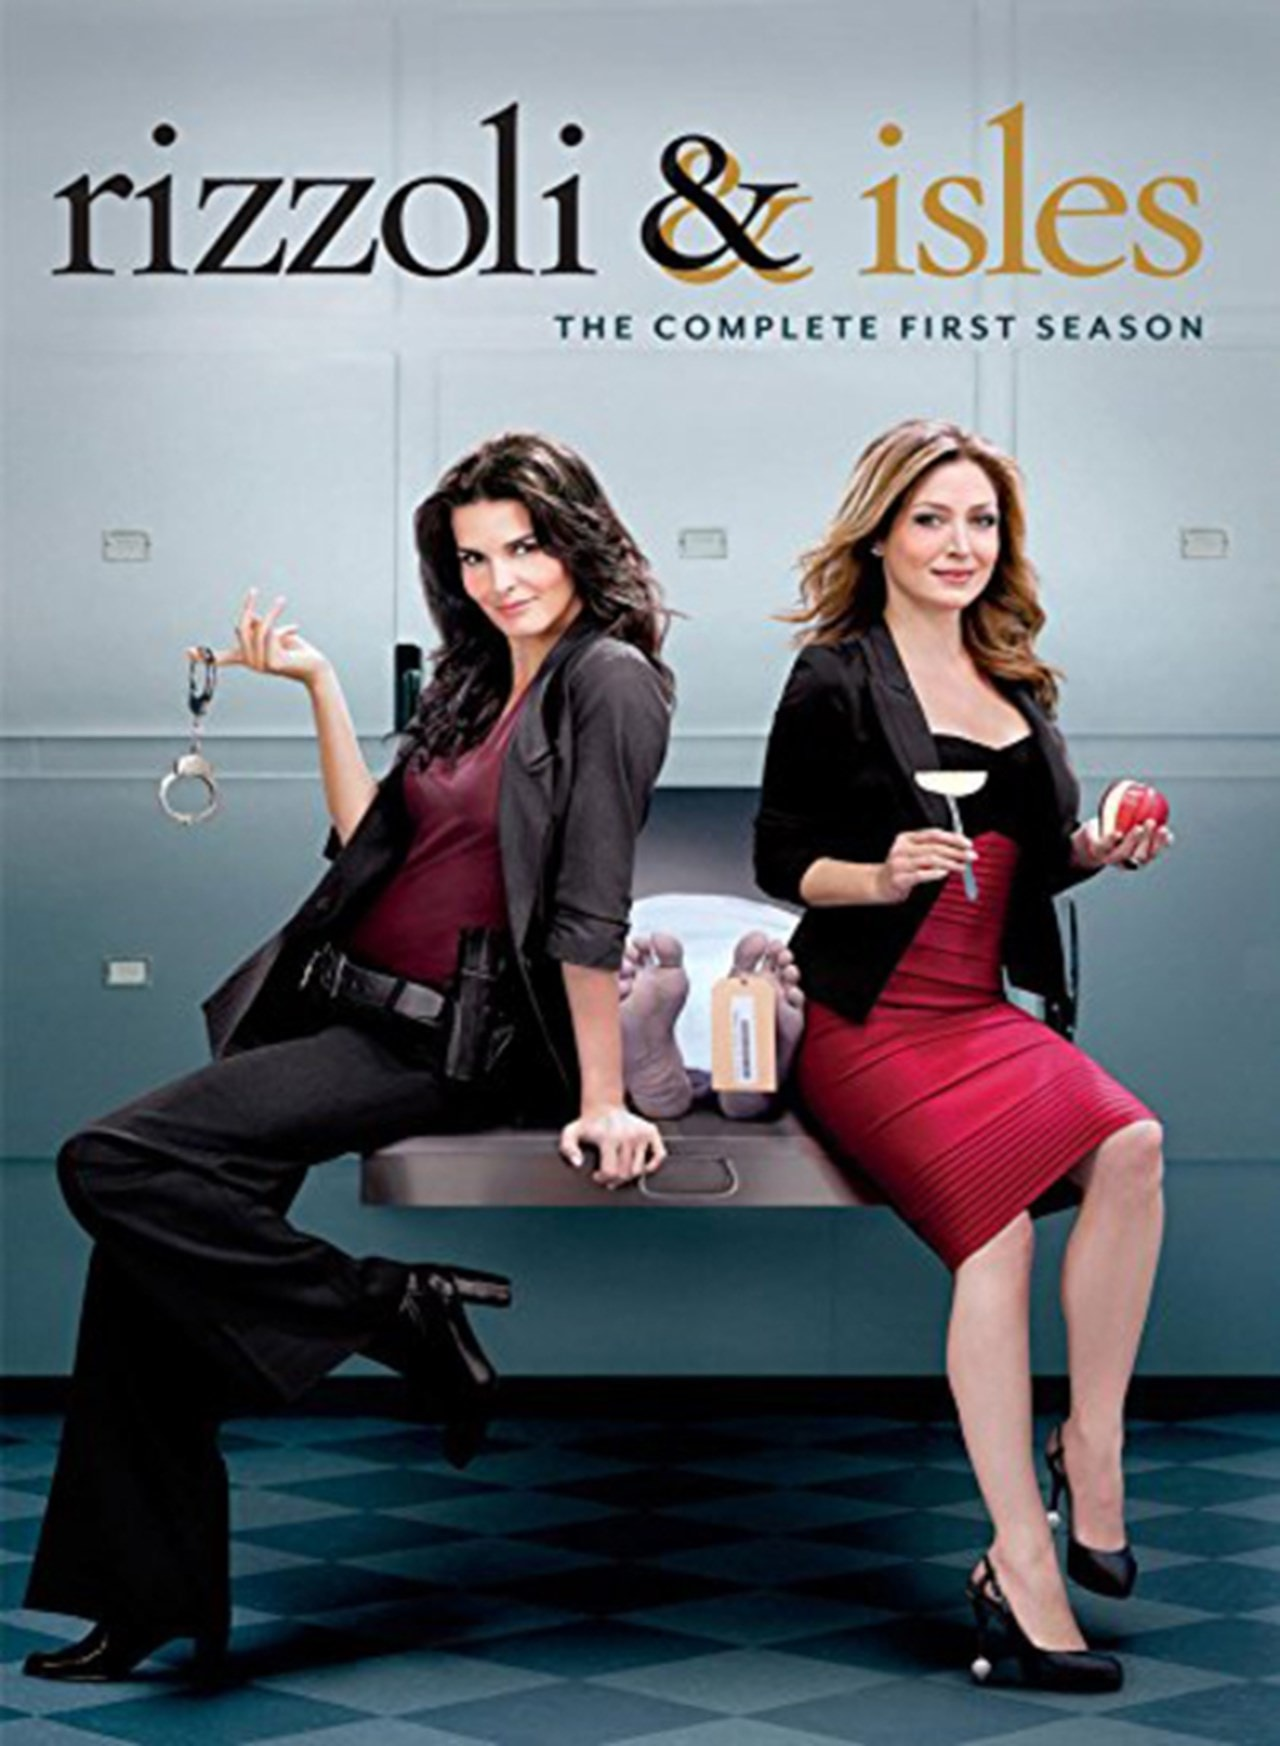 Rizzoli & Isles: The Complete First Season - 1